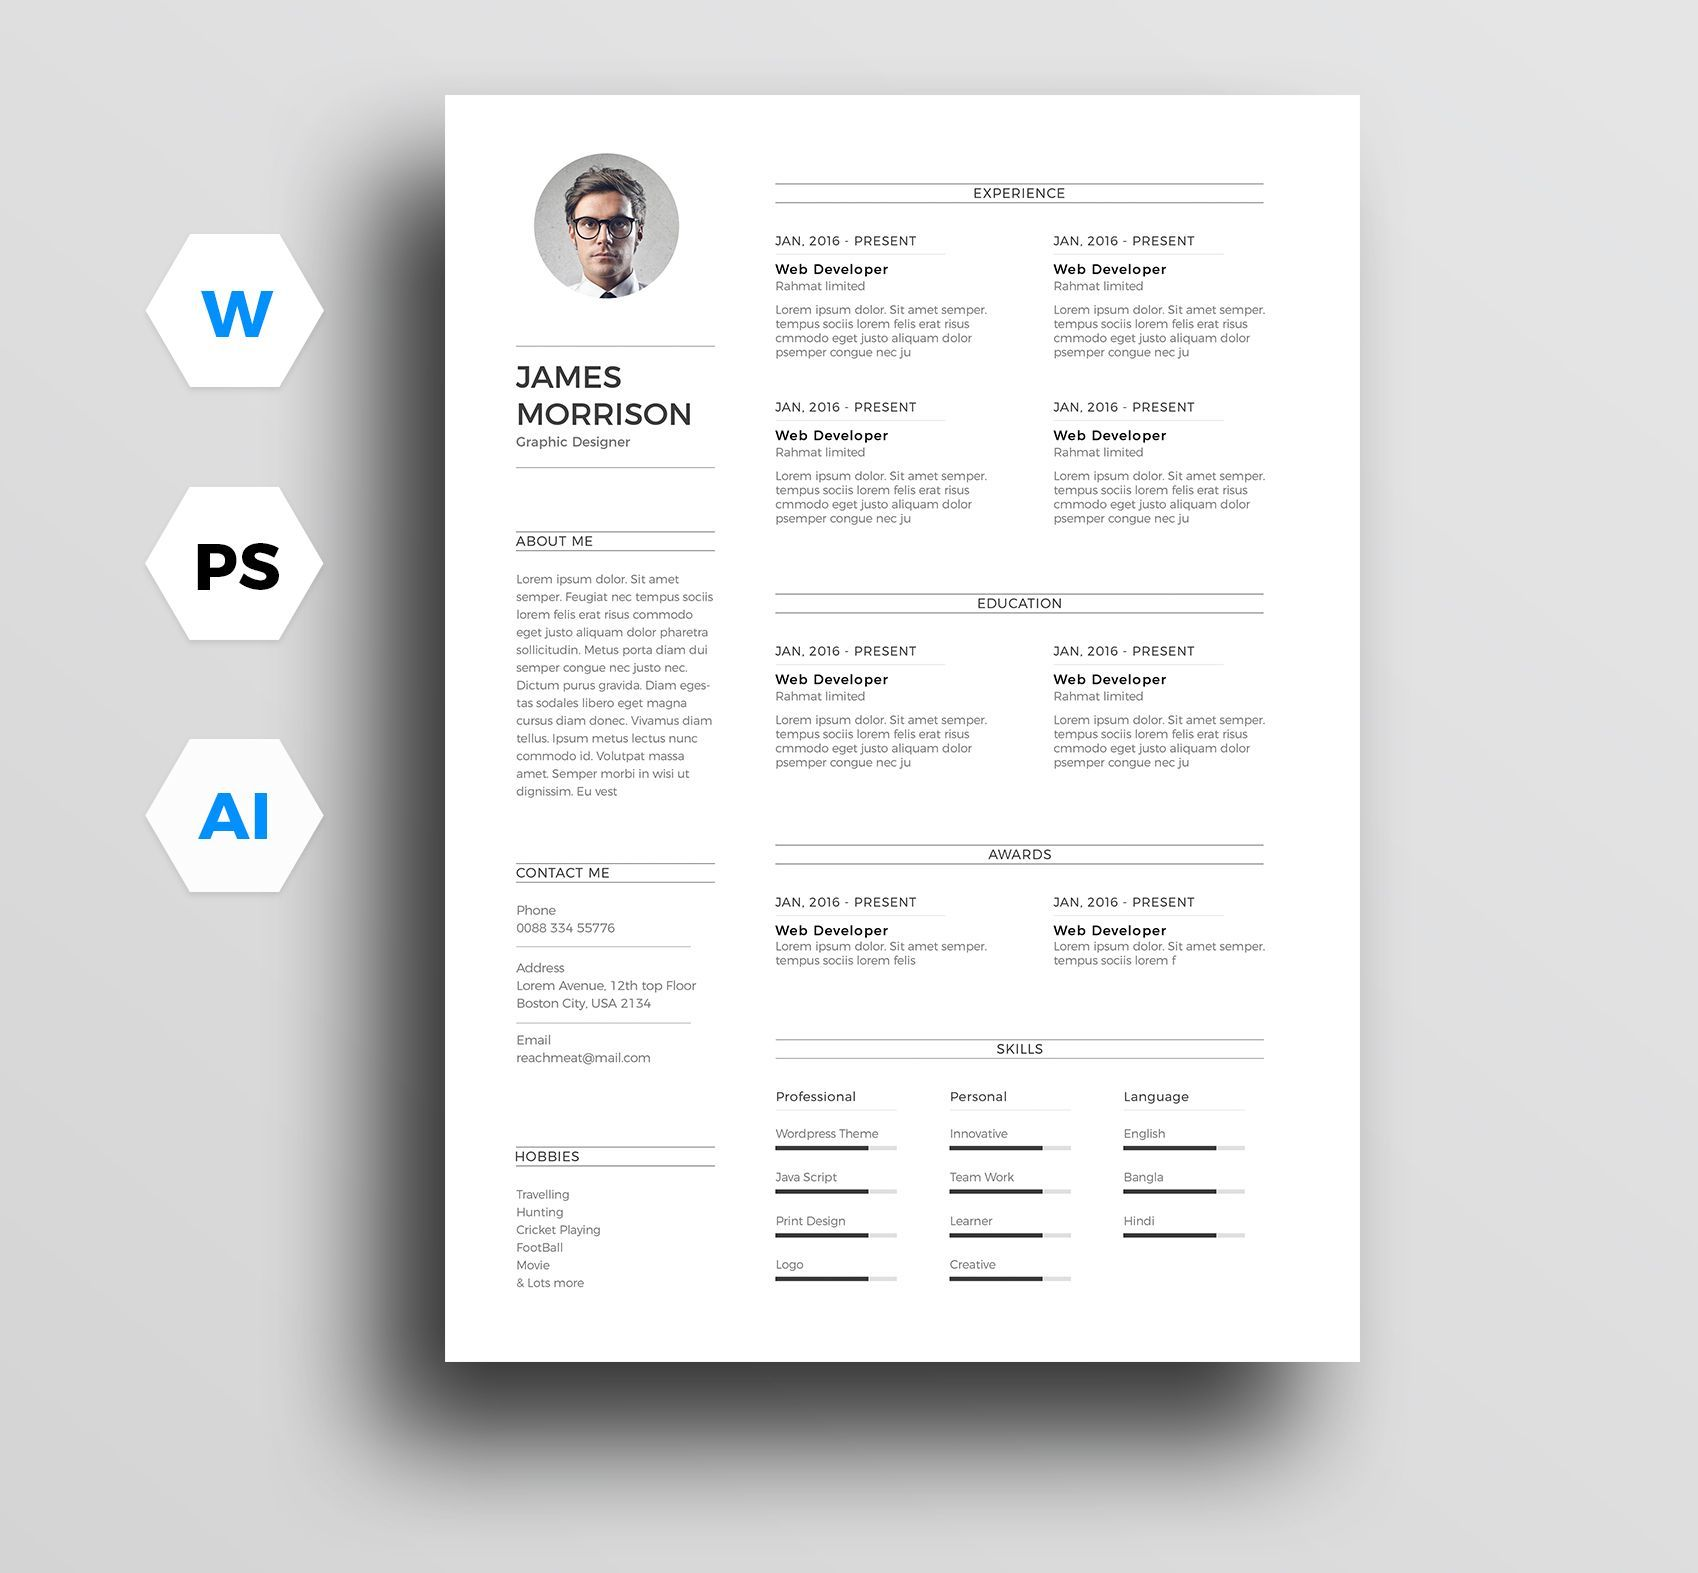 Resume Templates And Resume Examples Resume Tips Best Free Resume Templates Minimal Resume Template Resume Templates